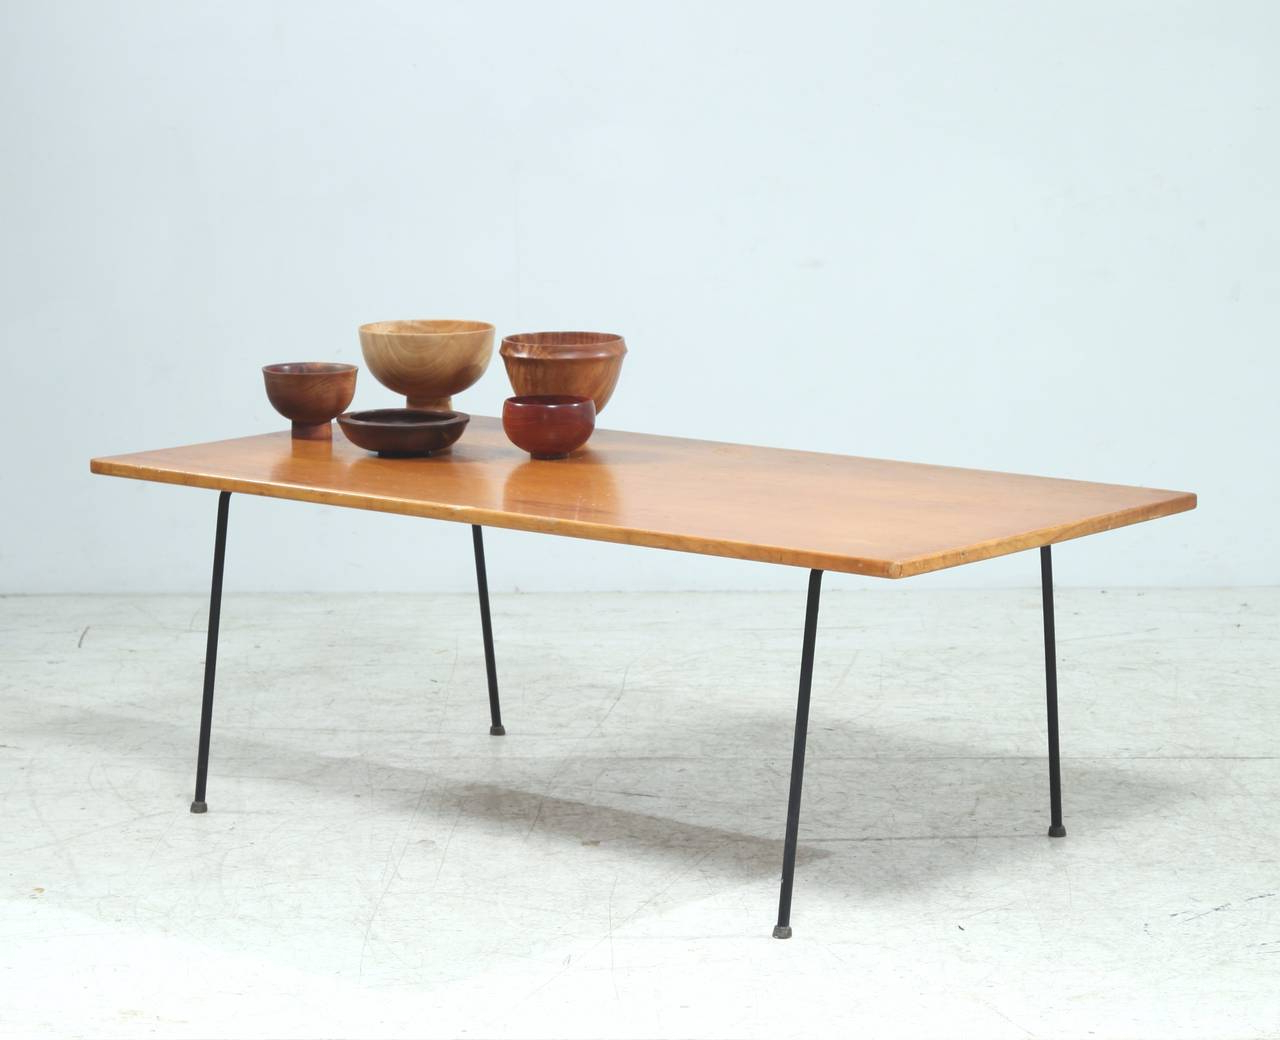 Minimalist Arden Riddle Coffee Table For Sale At 1Stdibs Regarding 2019 Minimalist Coffee Tables (Gallery 6 of 20)